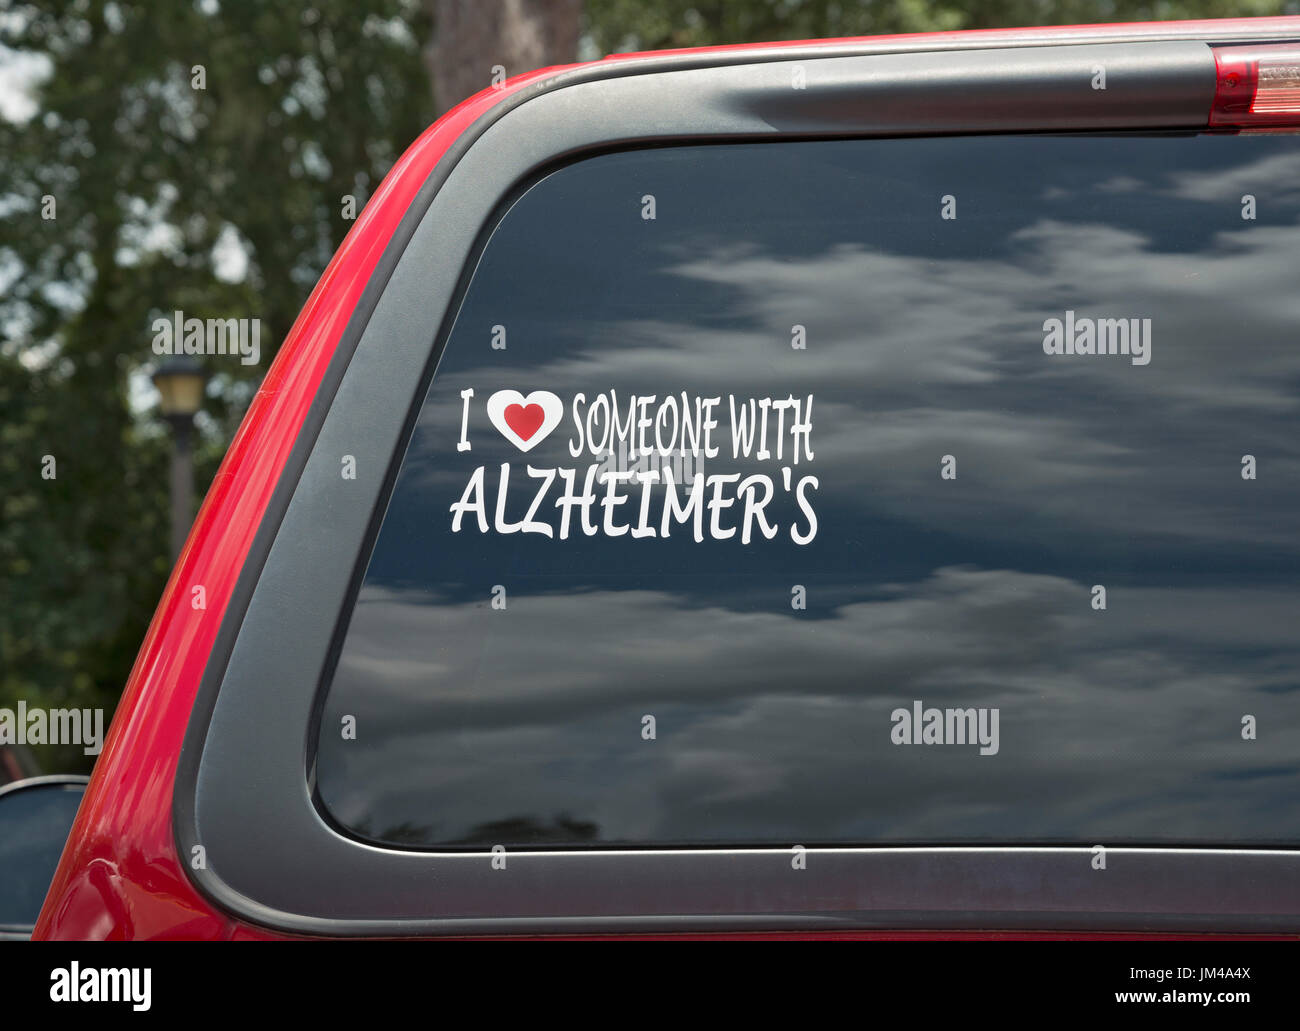 Alzheimers sticker in rear window of pickup truck stock image